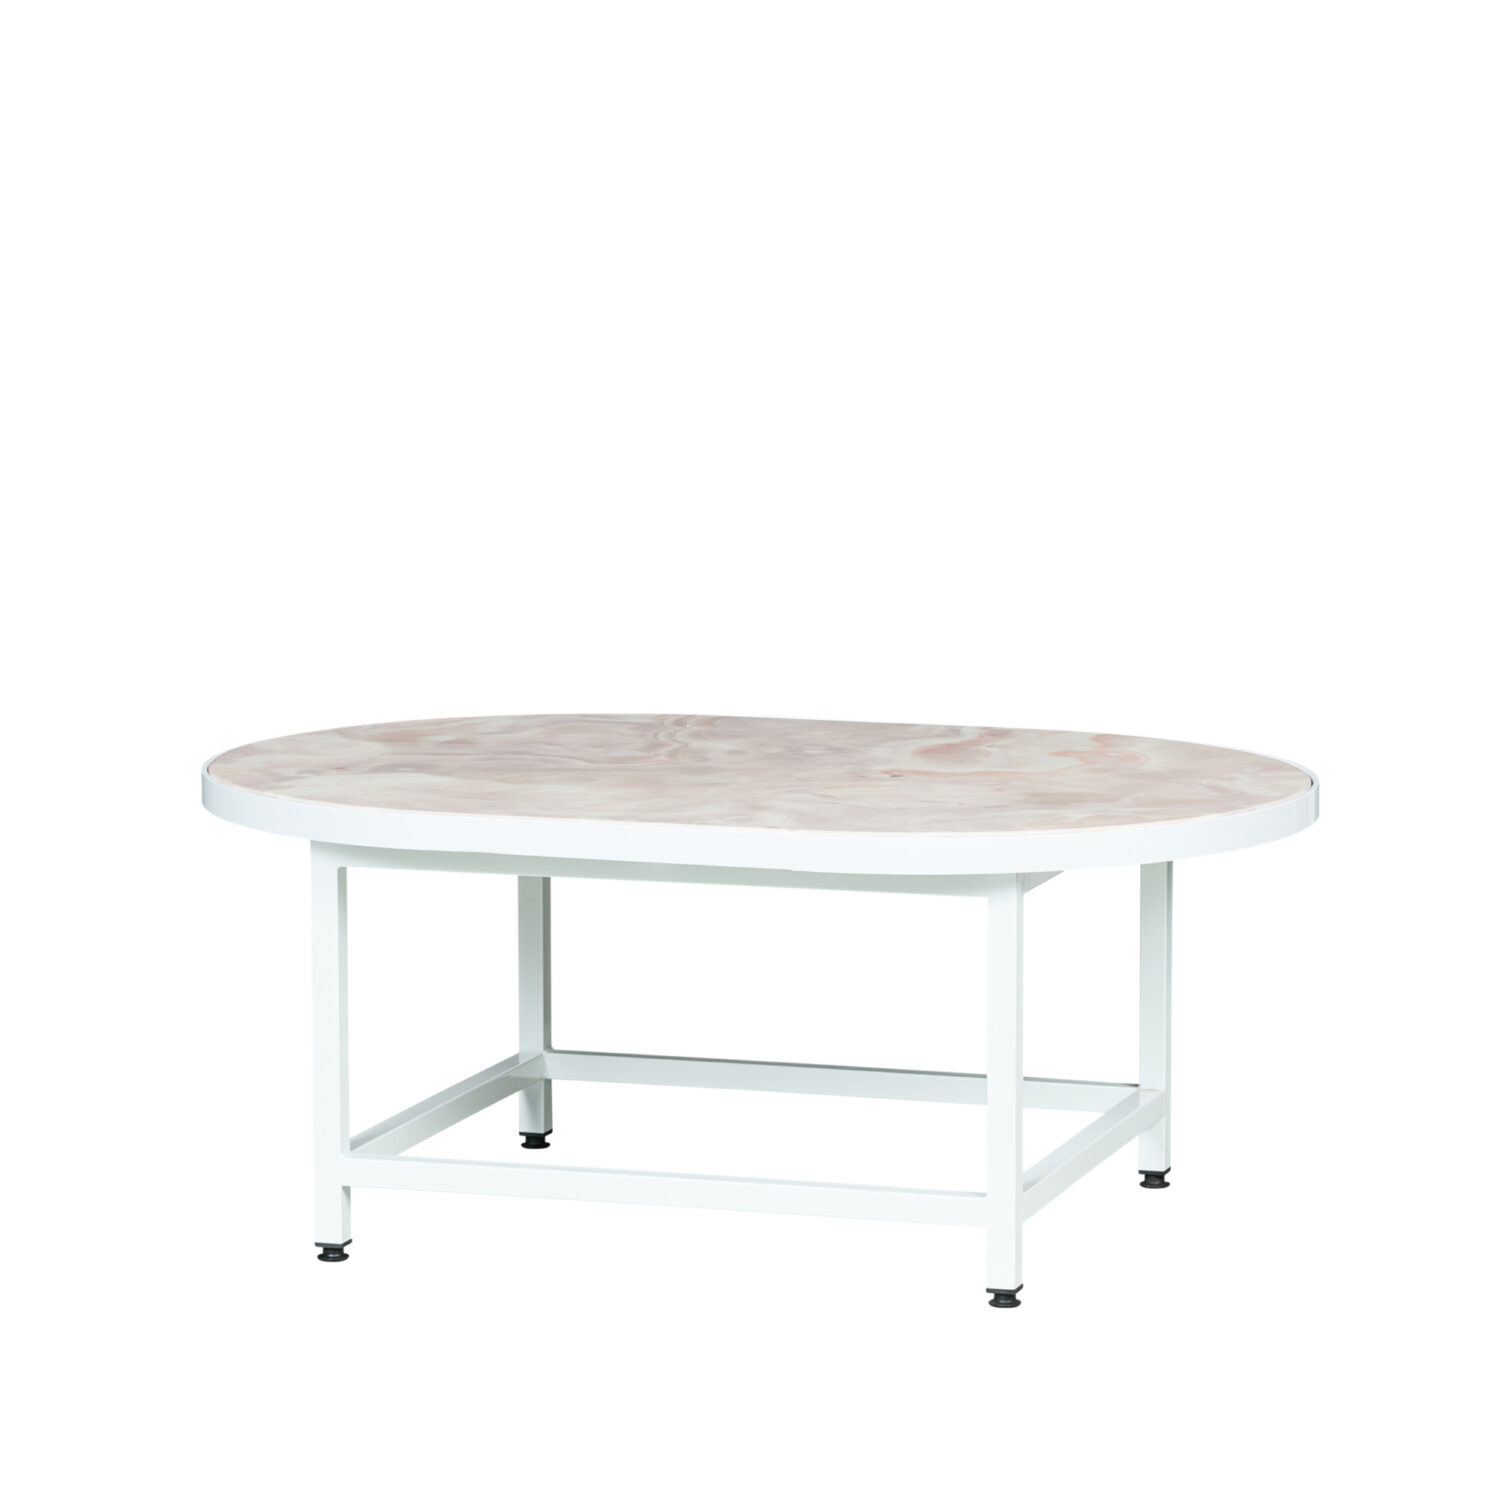 Pill Coffee Table - White Frame / Marble Top - Event Artillery